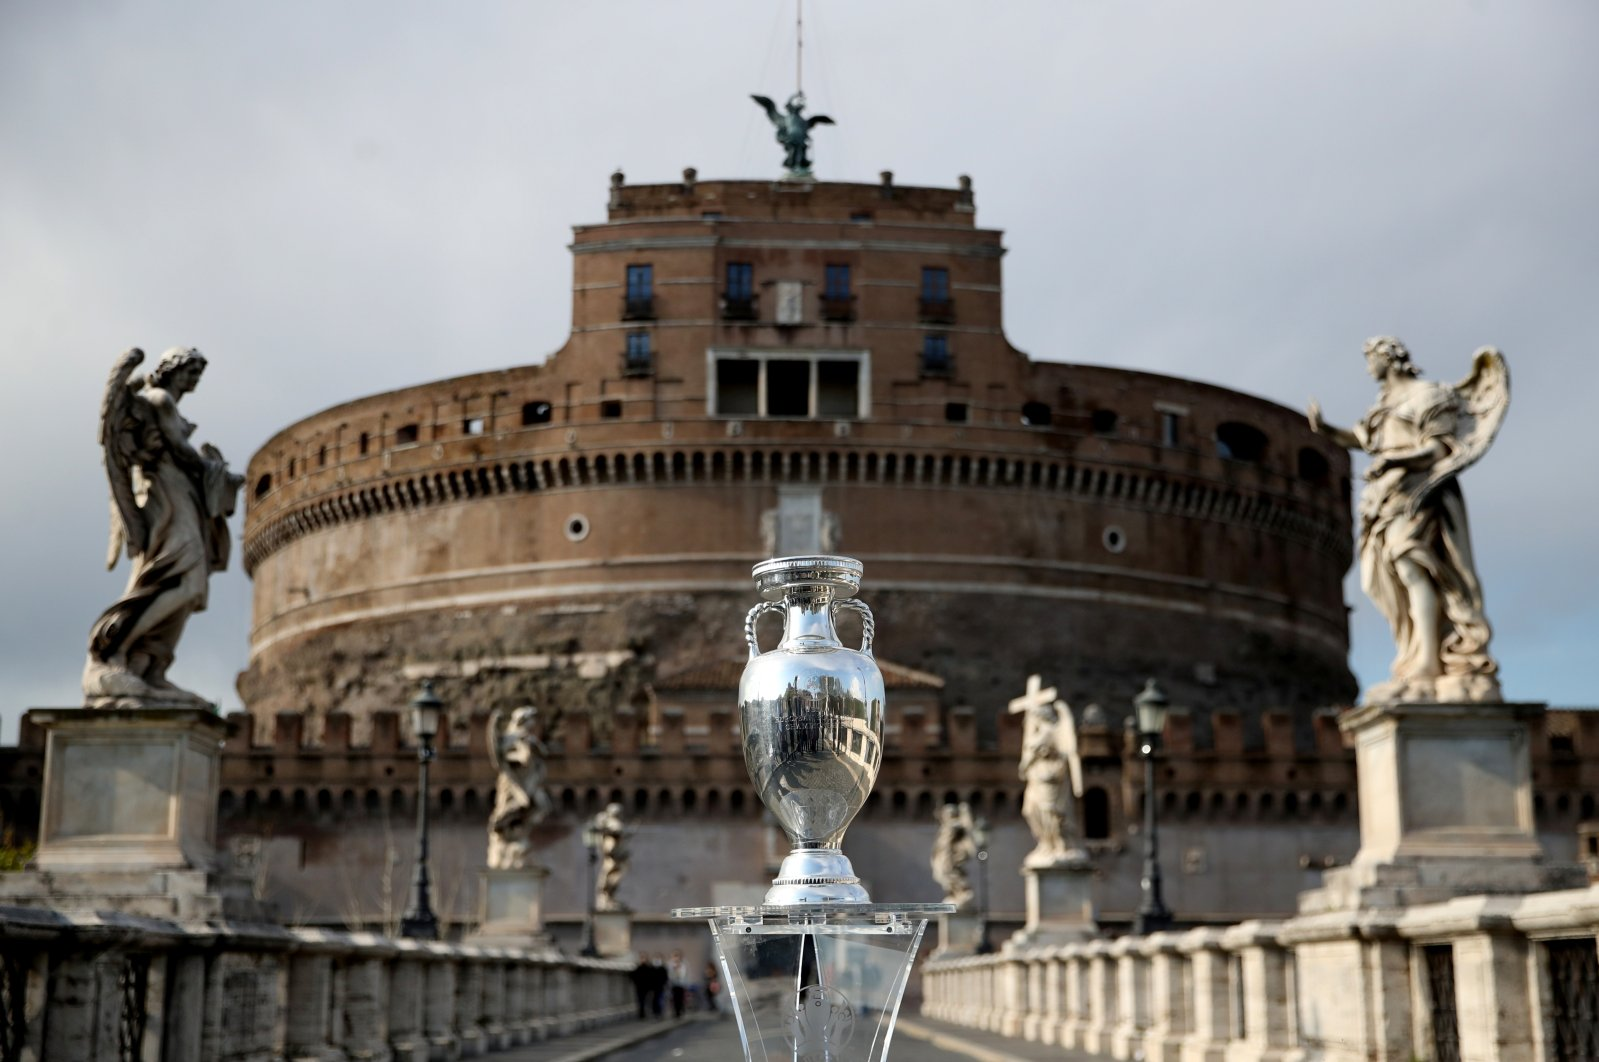 The UEFA European Championship trophy is displayed in Rome, Castel'Angelo Bridge, Rome, Italy, April 20, 2021. (Reuters Photo)